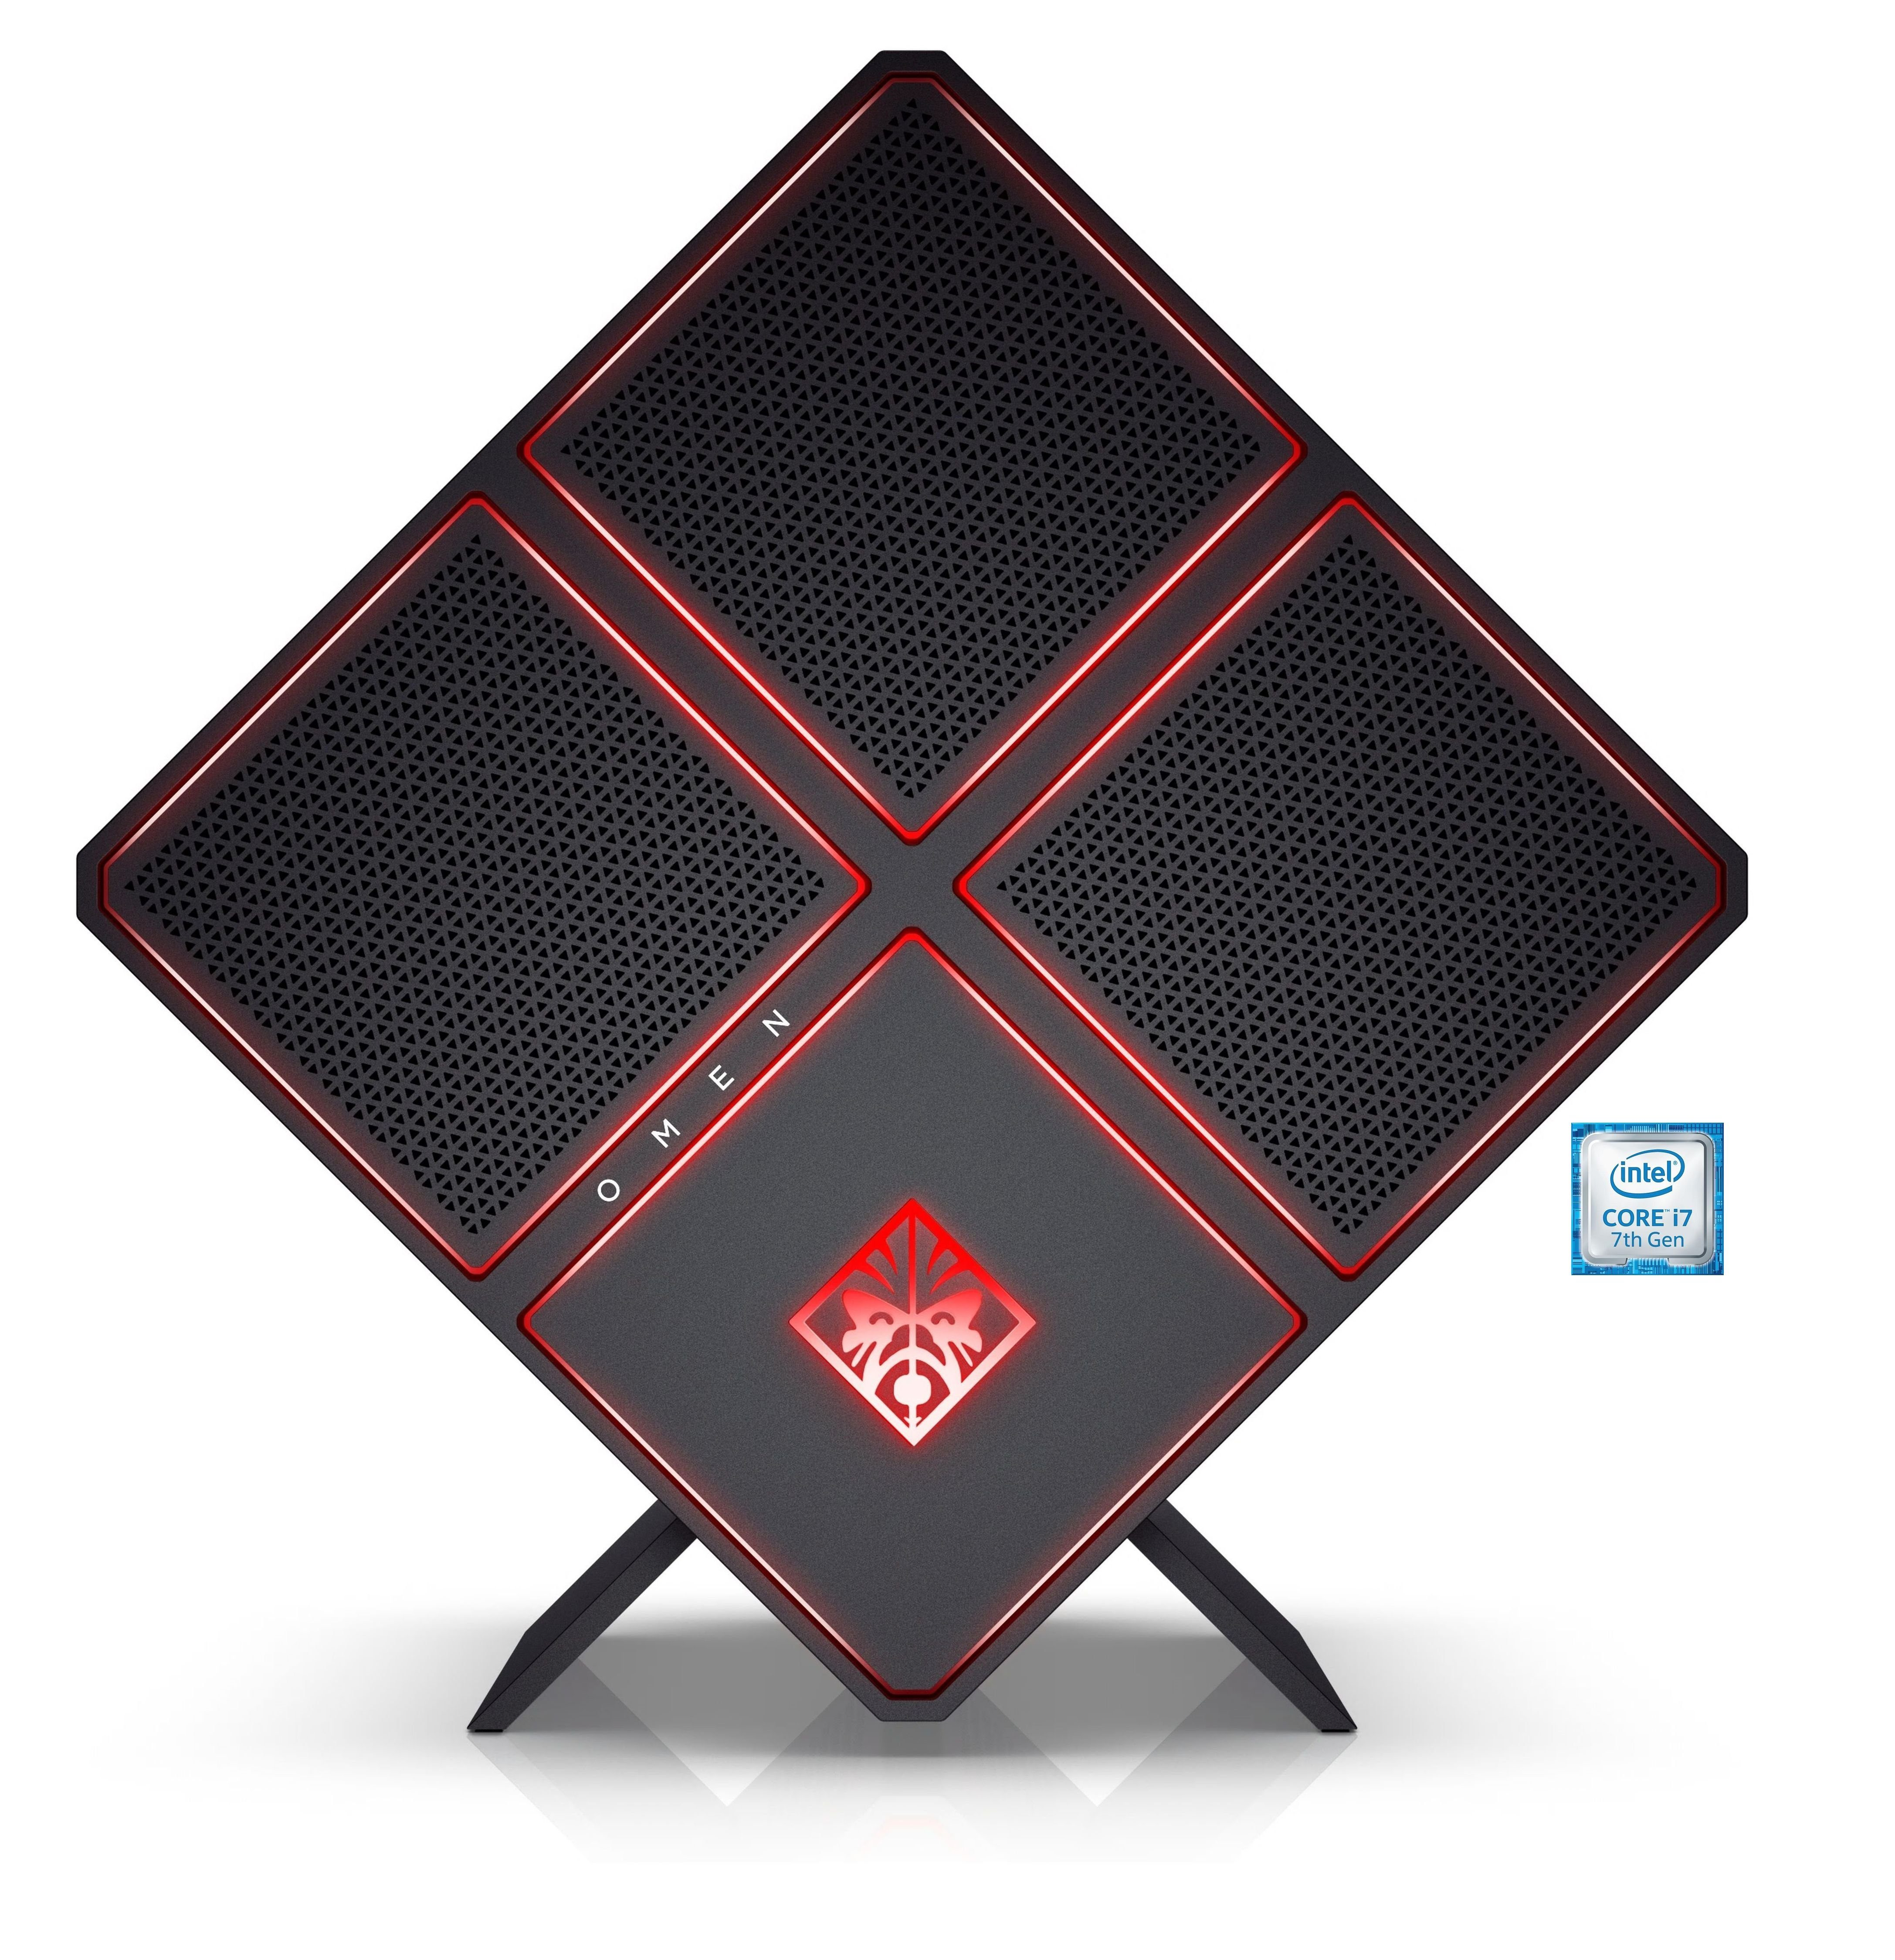 HP OMEN by HP Omen X 900-250ng Gaming-PC »Intel Core i7, 512 GB SSD + 3 TB HDD, 16 GB«